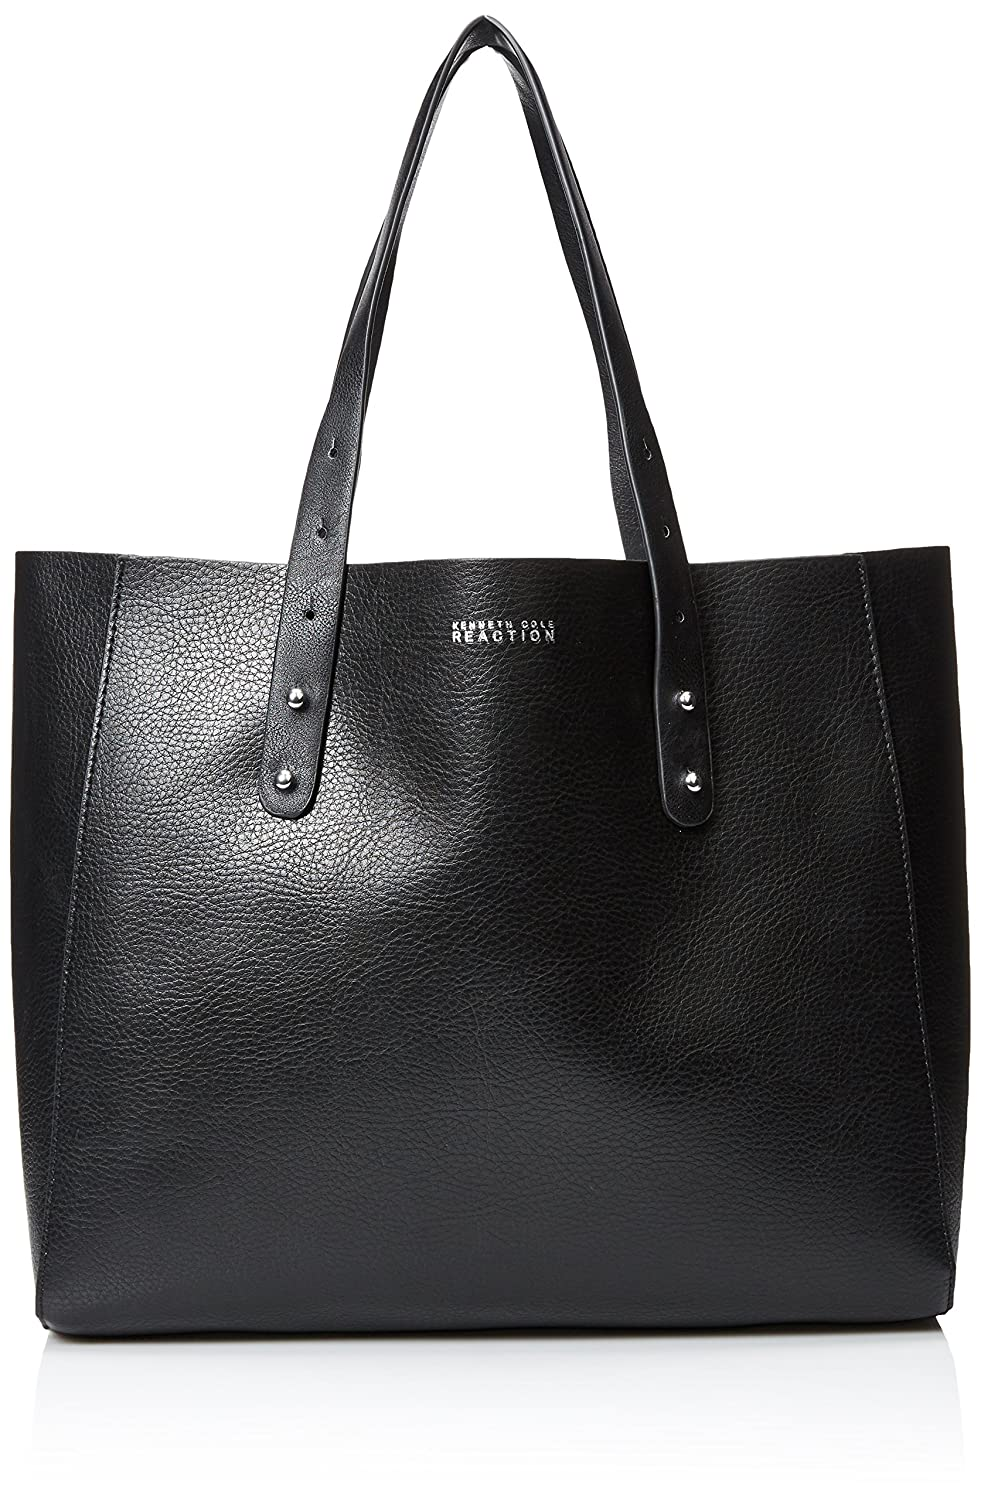 Kenneth Cole Reaction Heavy Metal Tote Bag